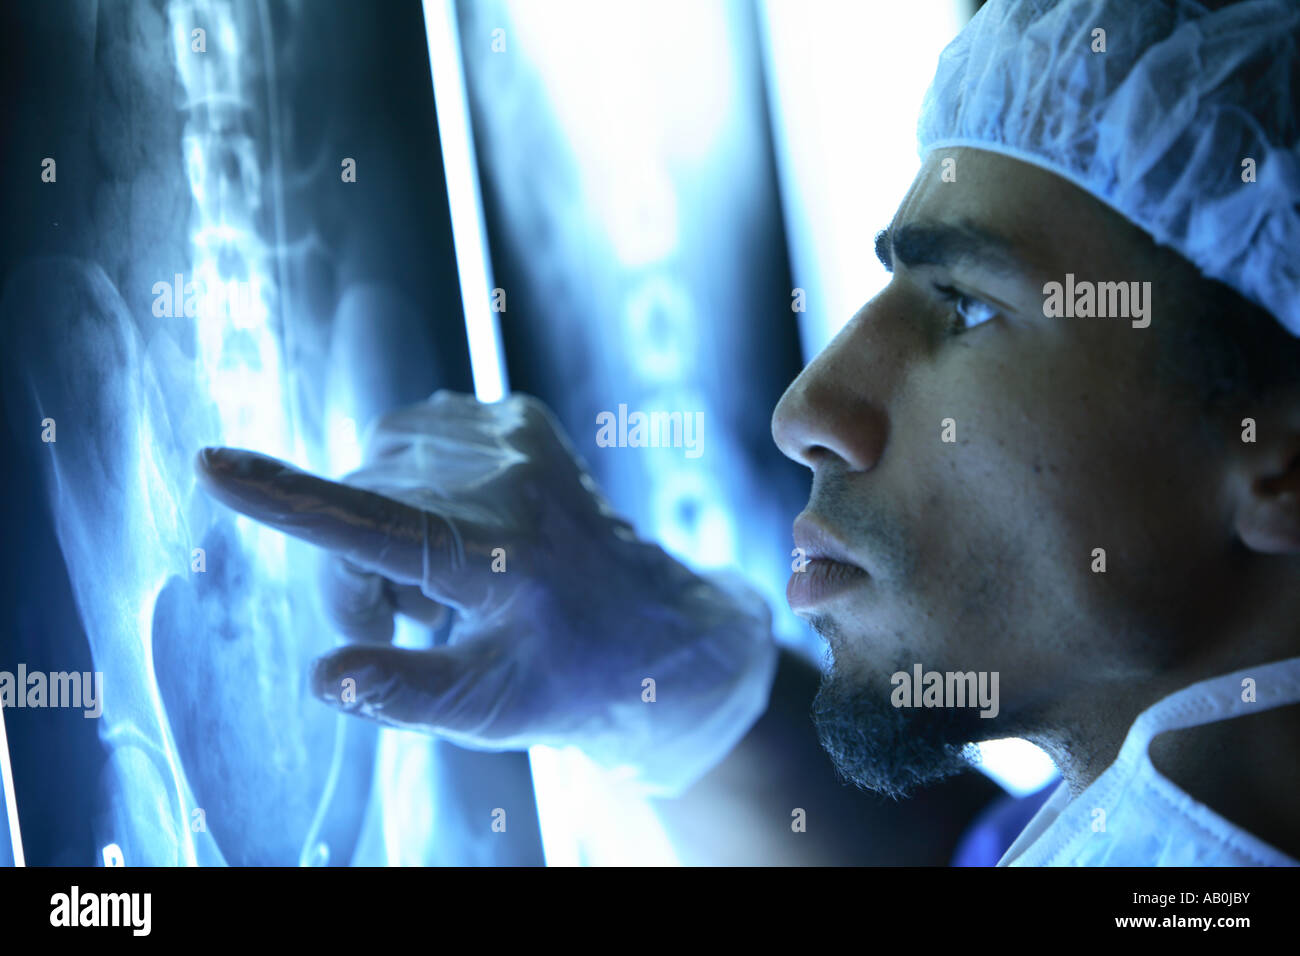 Doctor examines x rays - Stock Image